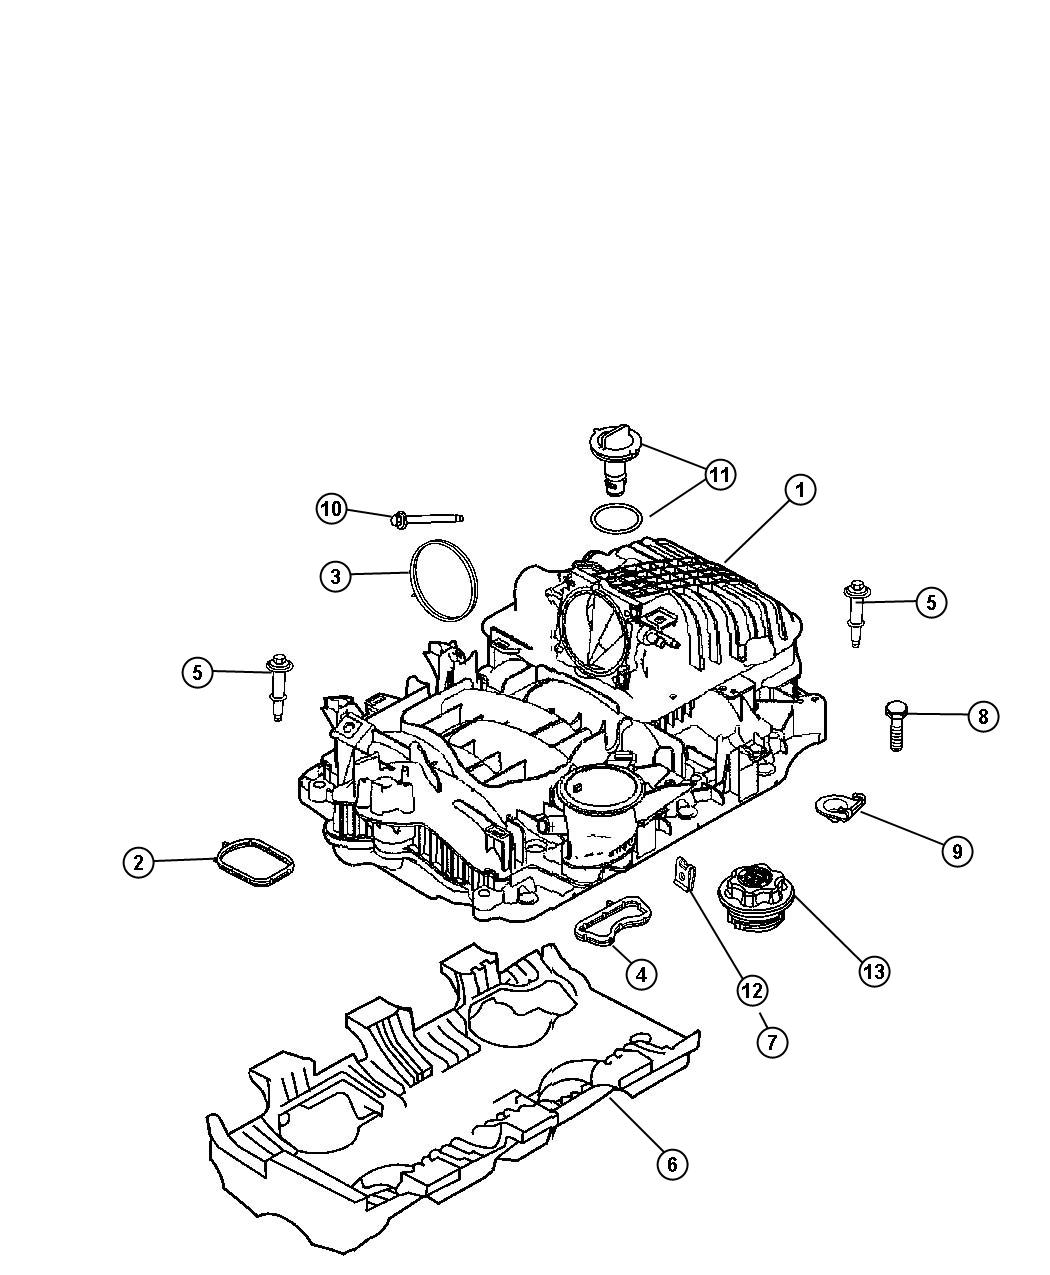 Service manual [2007 Chrysler Aspen Intake Manifold